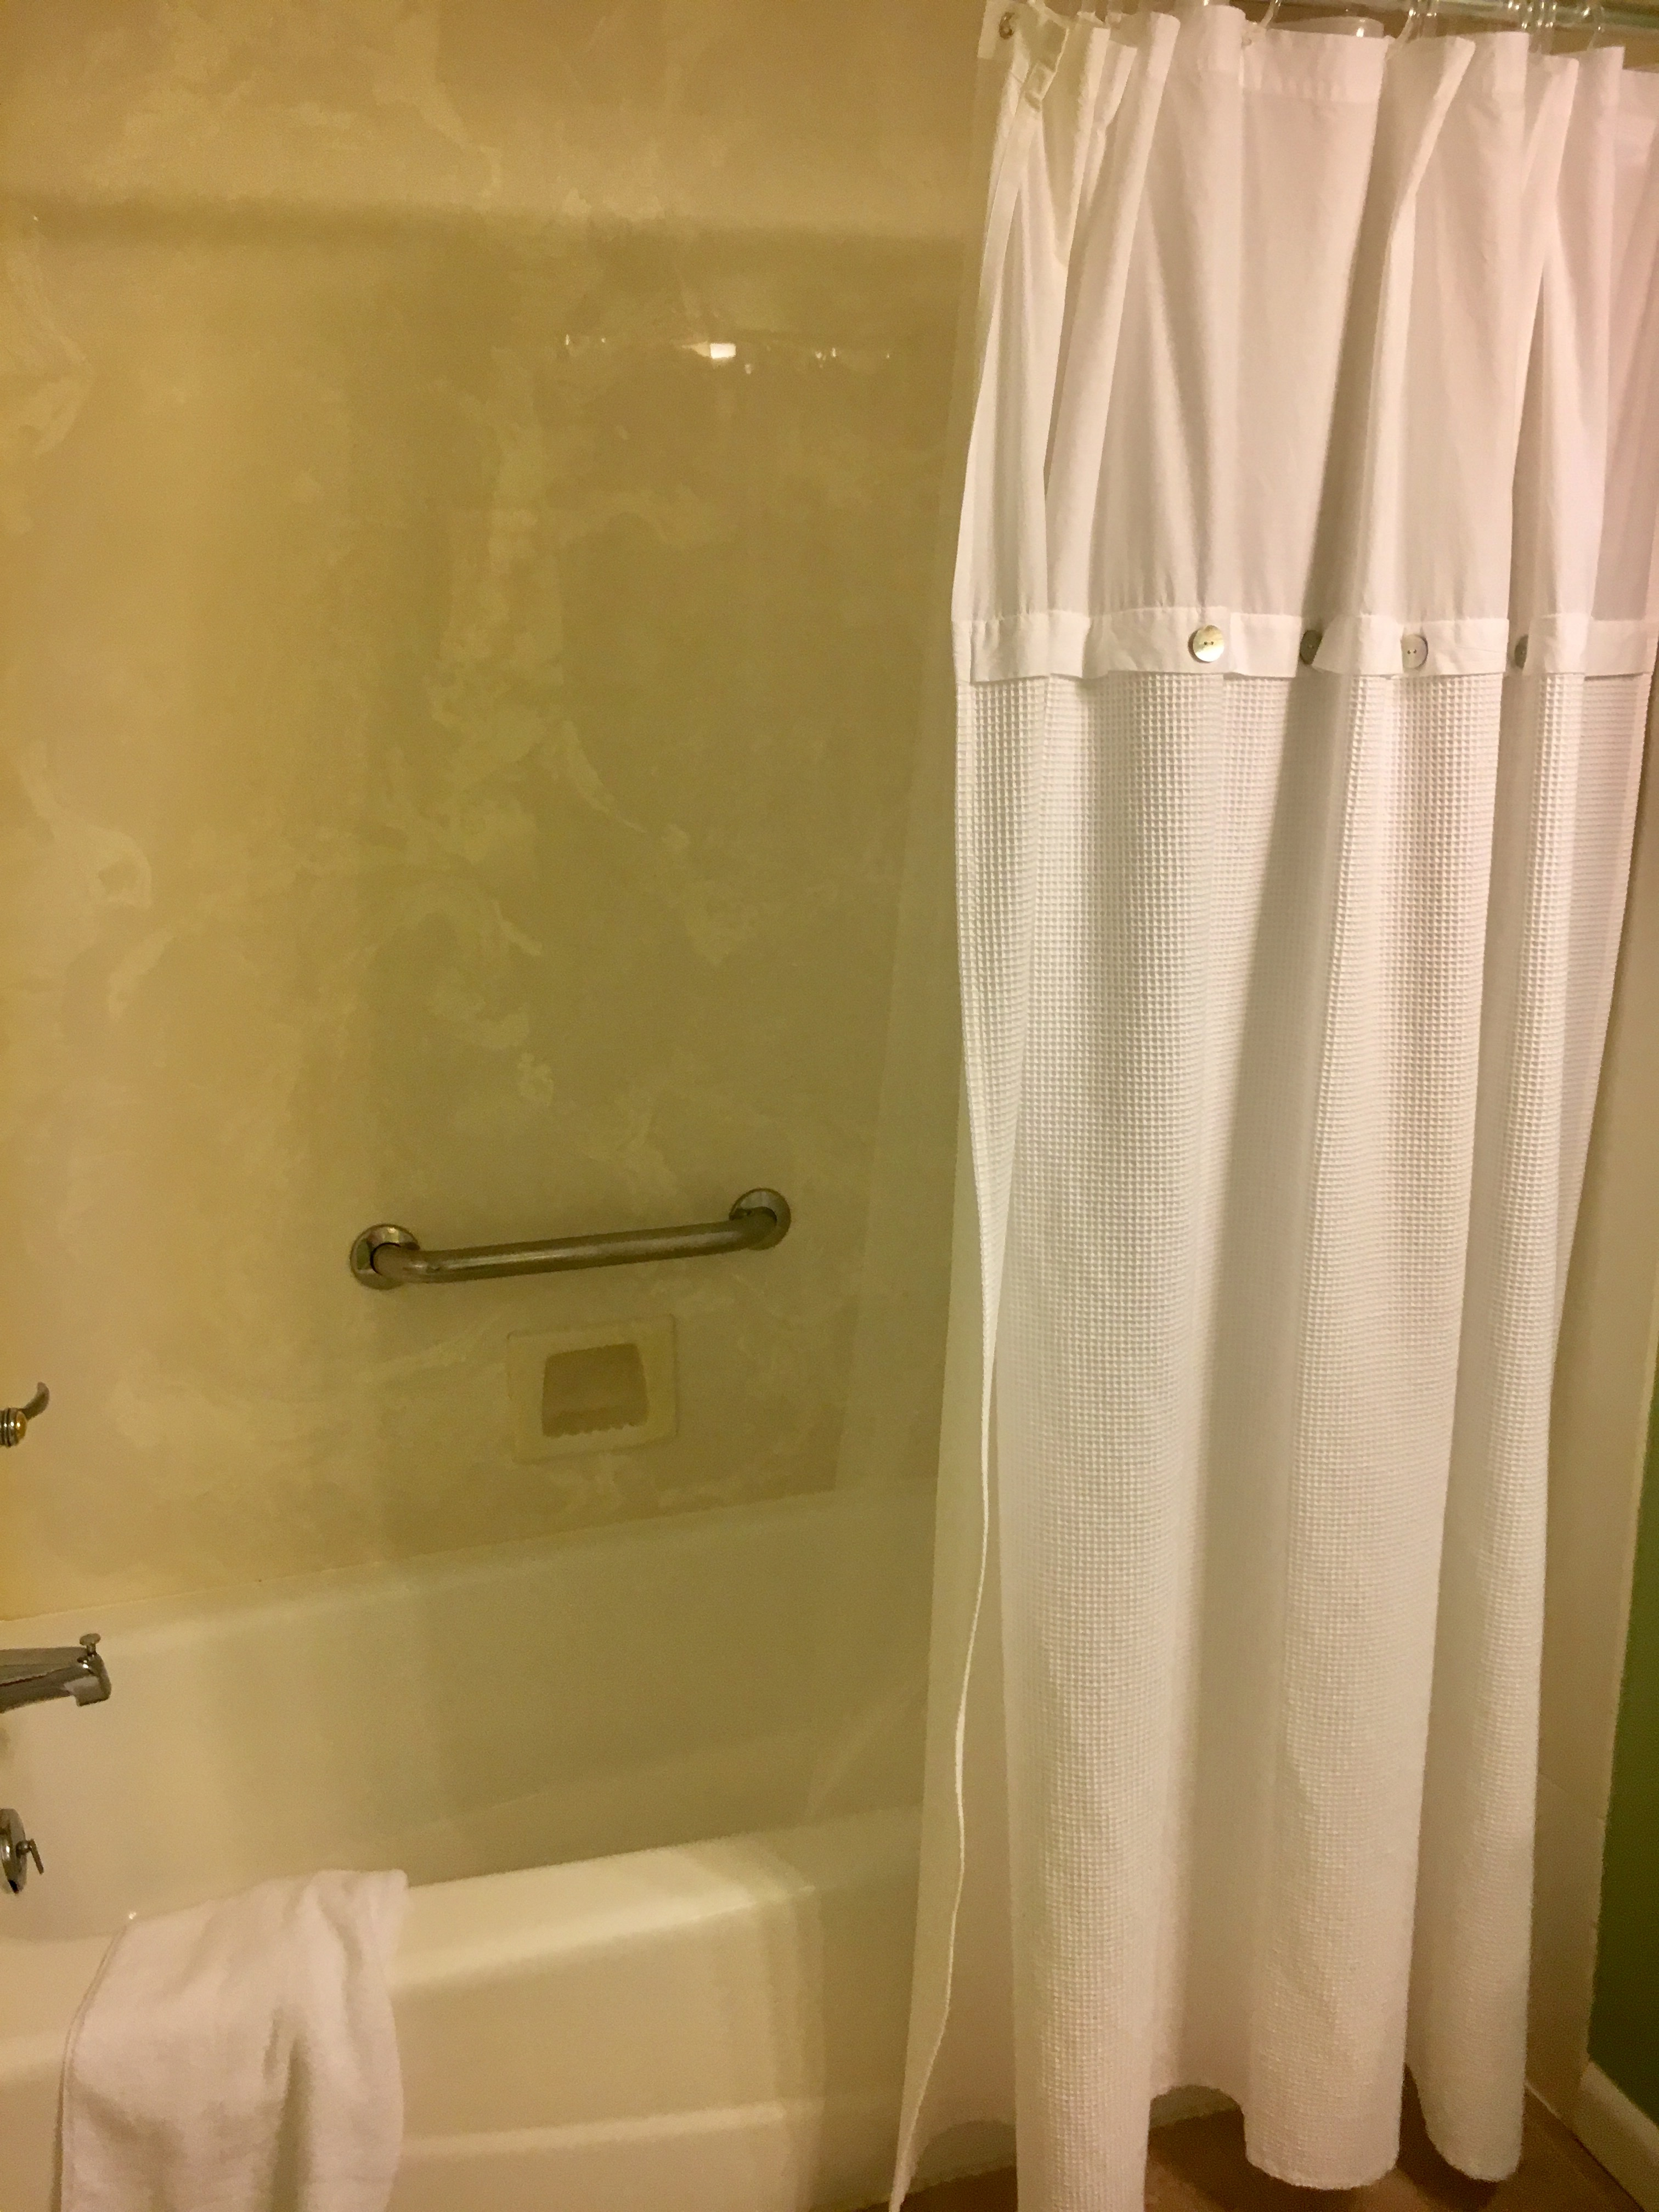 Shower/tub in the 2nd bathroom too.